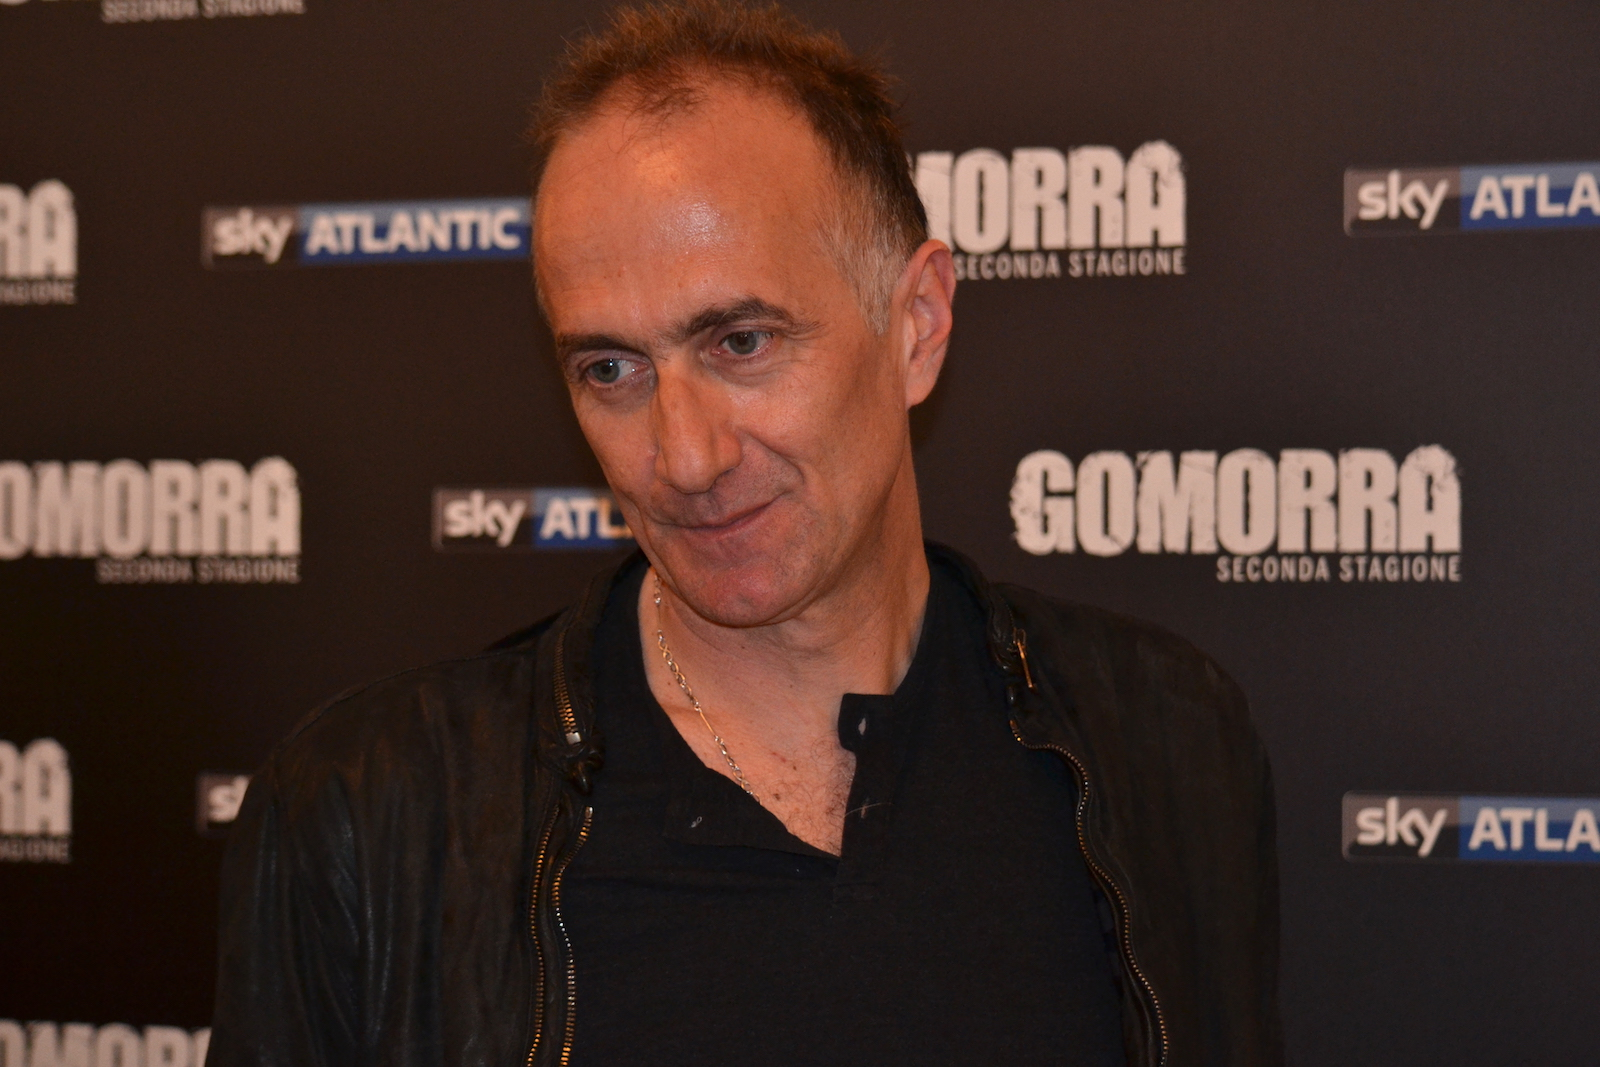 Gomorra seconda stagione: Stefano Sollima al Photocall